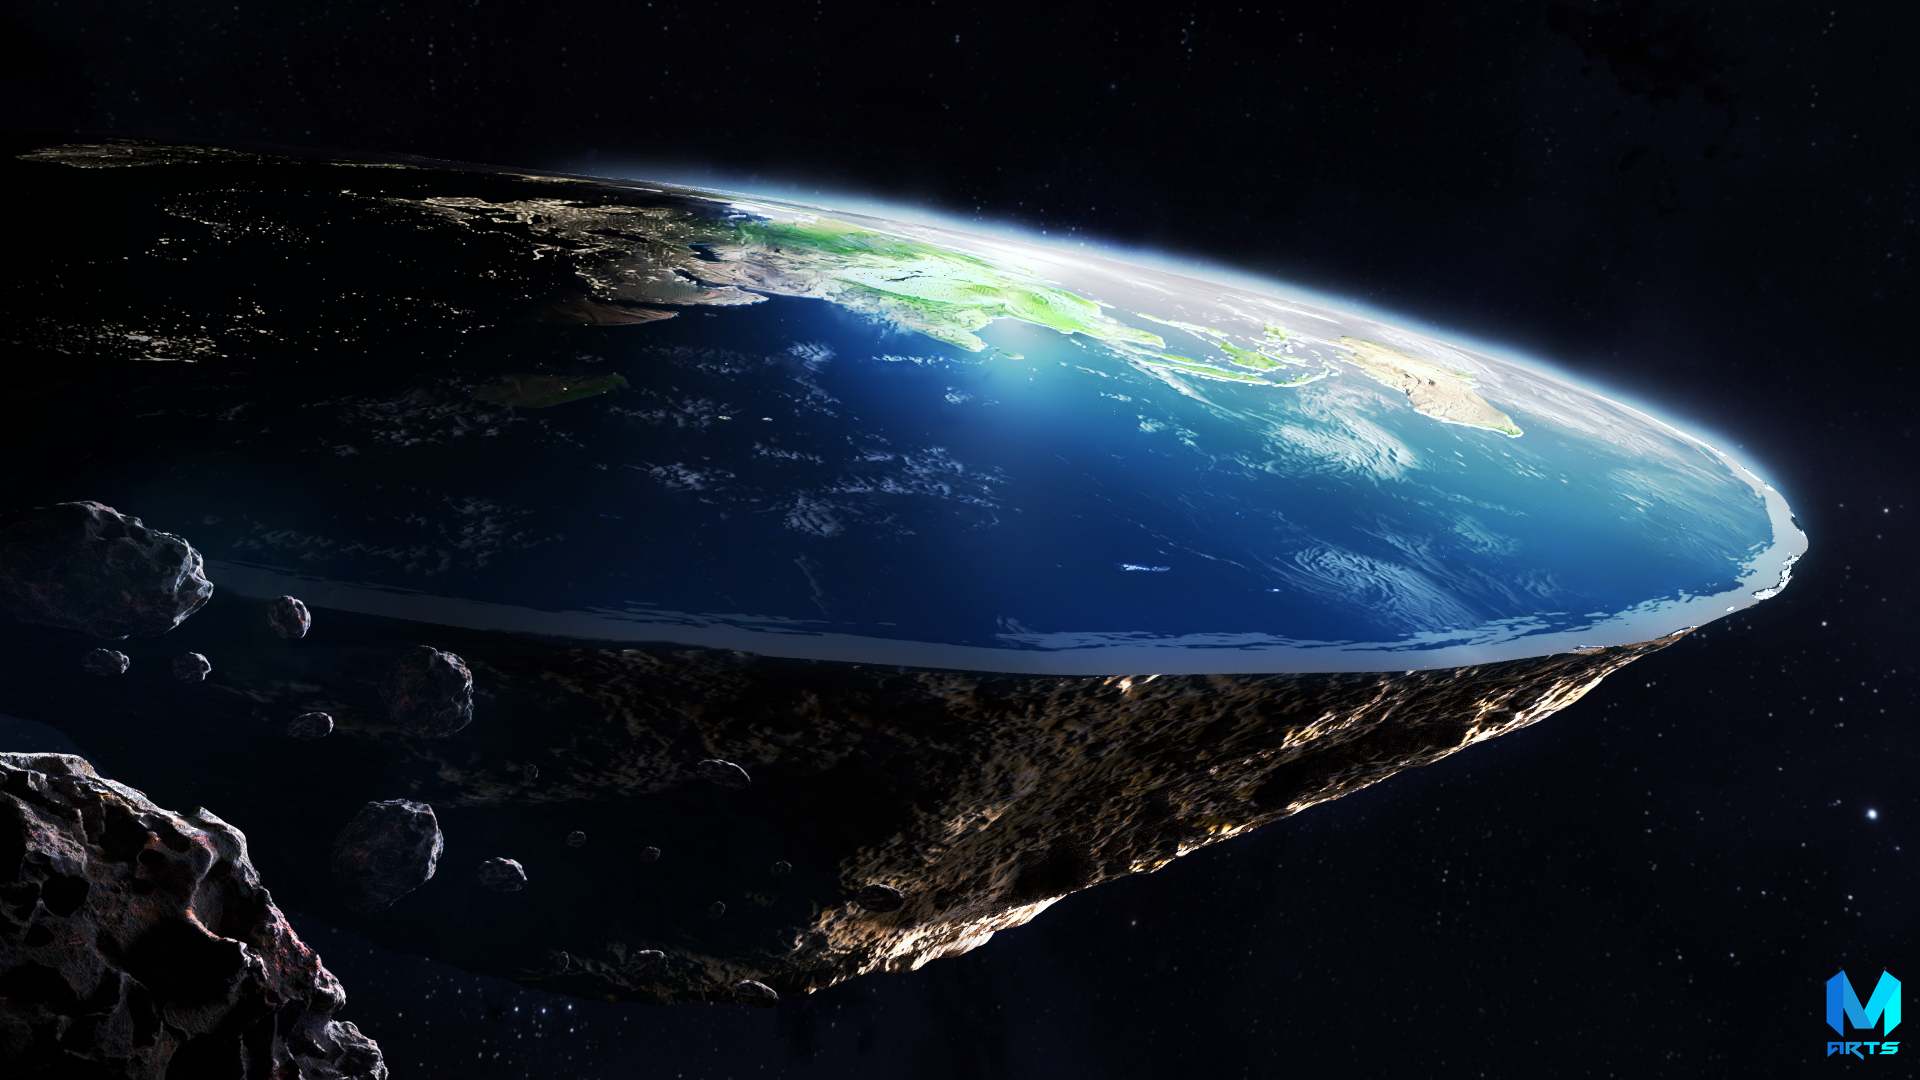 flat earth wallpaper,outer space,atmosphere,earth,astronomical object,planet